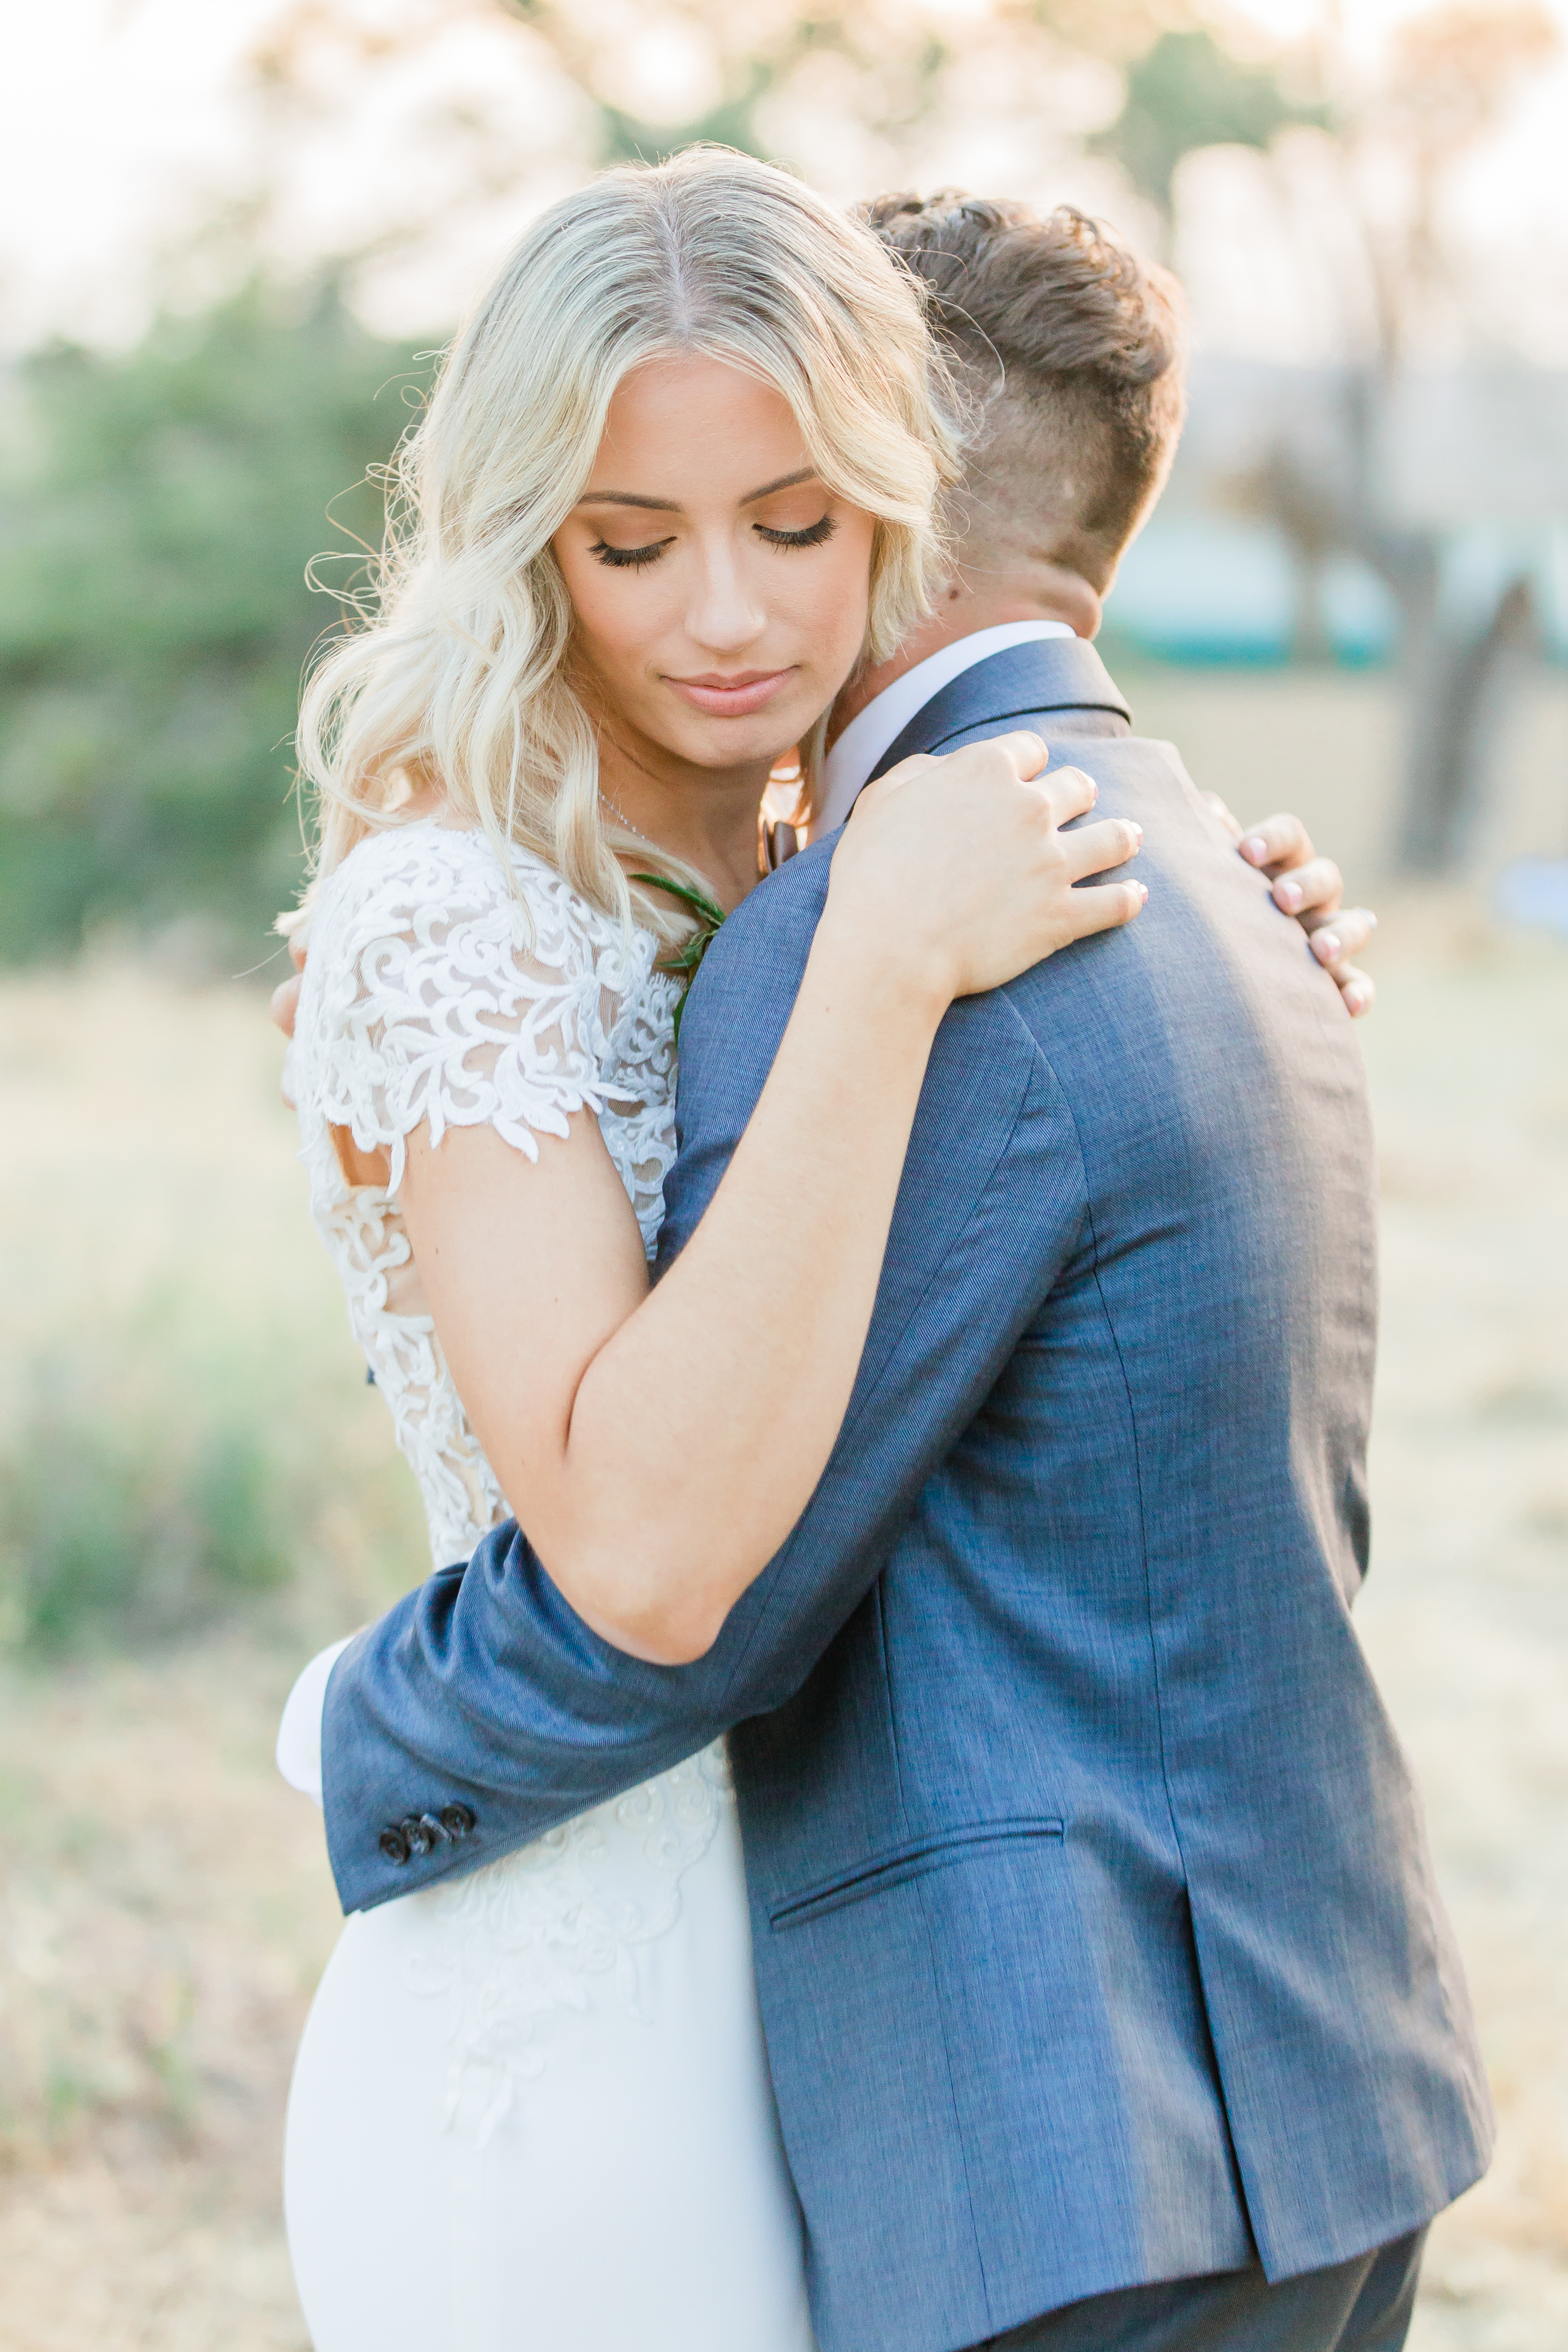 Kaitlynn and Colby - Married - Sneaks - Lauren Alisse Photography-116.jpg